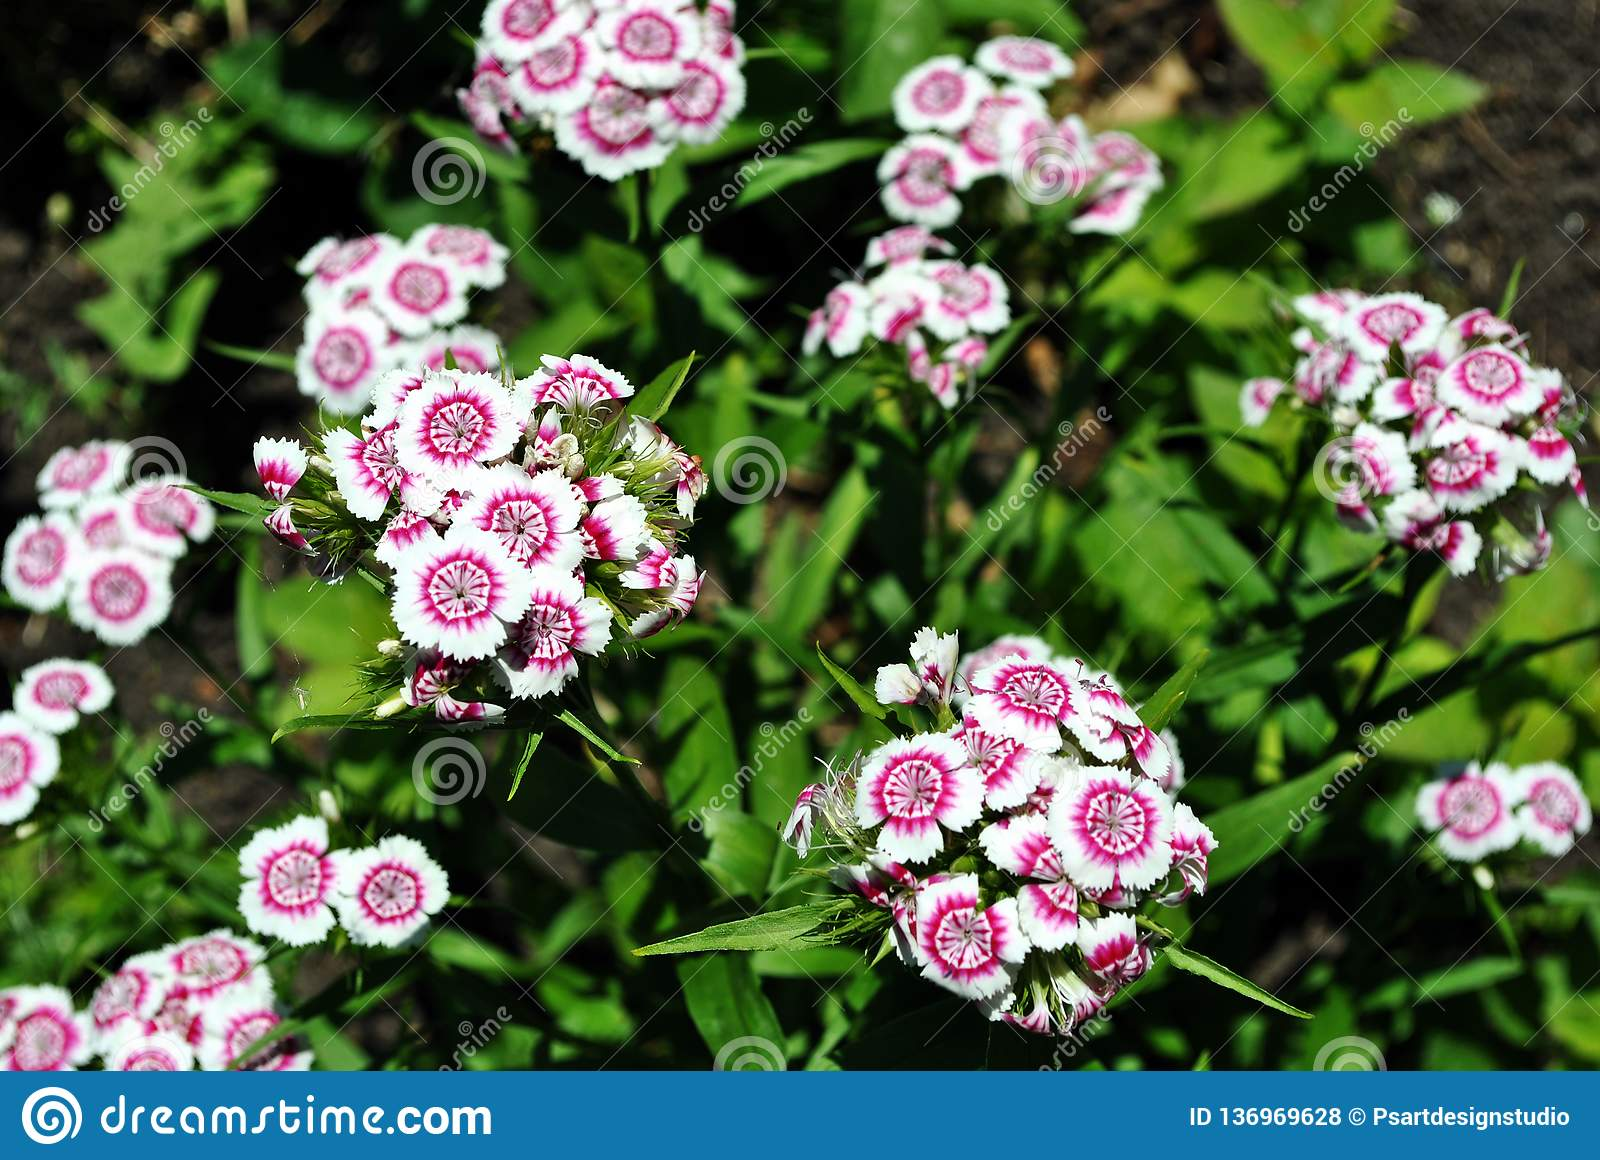 Dianthus barbatus Sweet William flowers blooming on glade, top view, green soft background